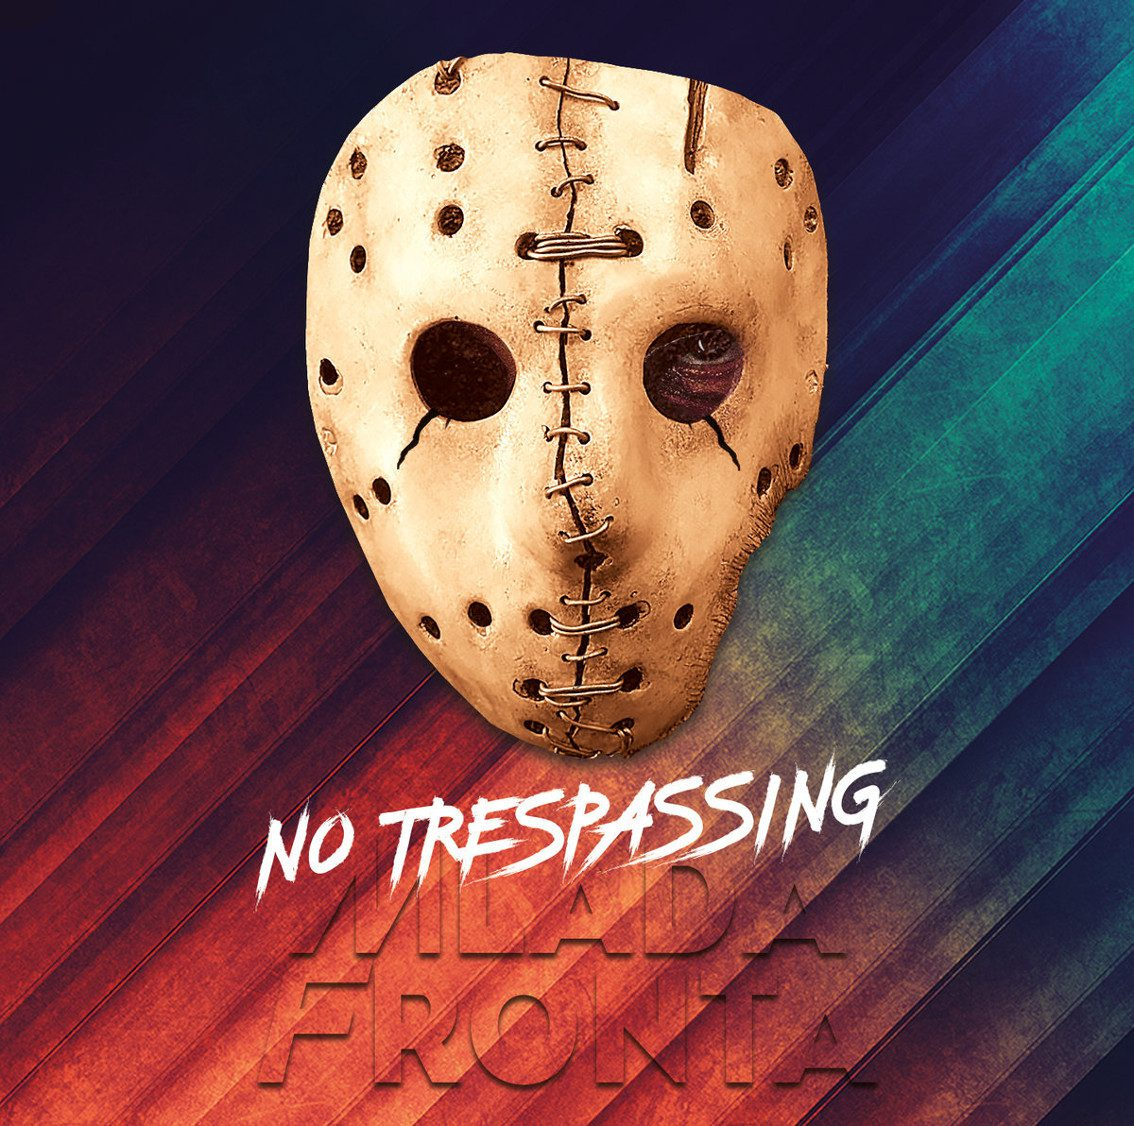 Mlada Fronta returns with all new album'No Trespassing' 2 years after'Outrun'